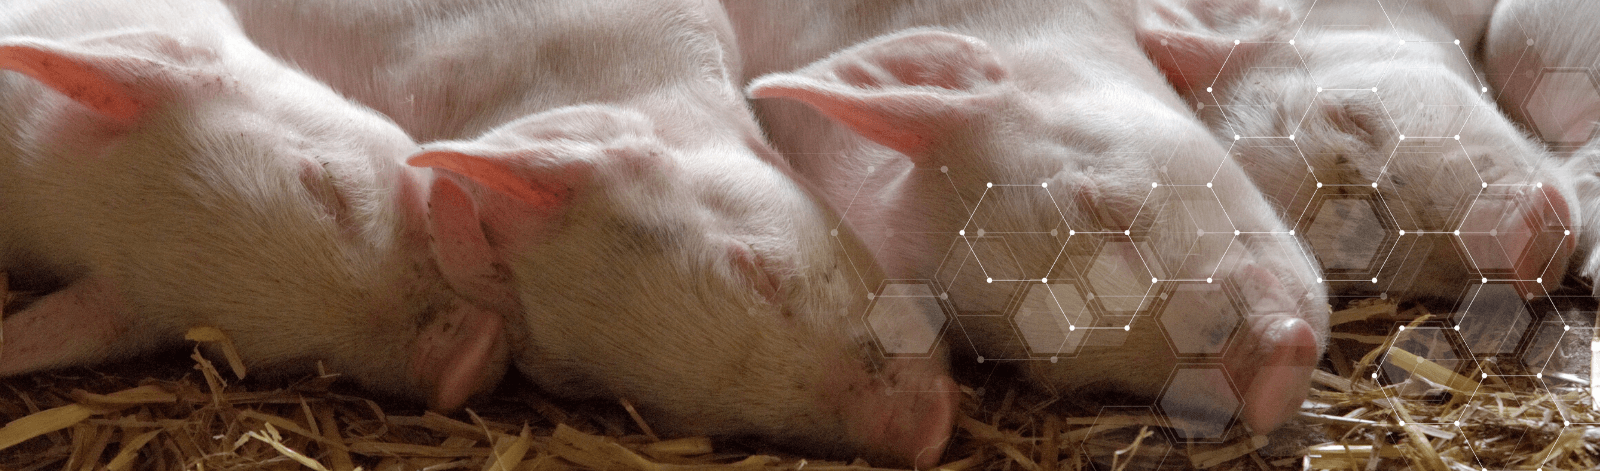 CeltiCal supports animal welfare